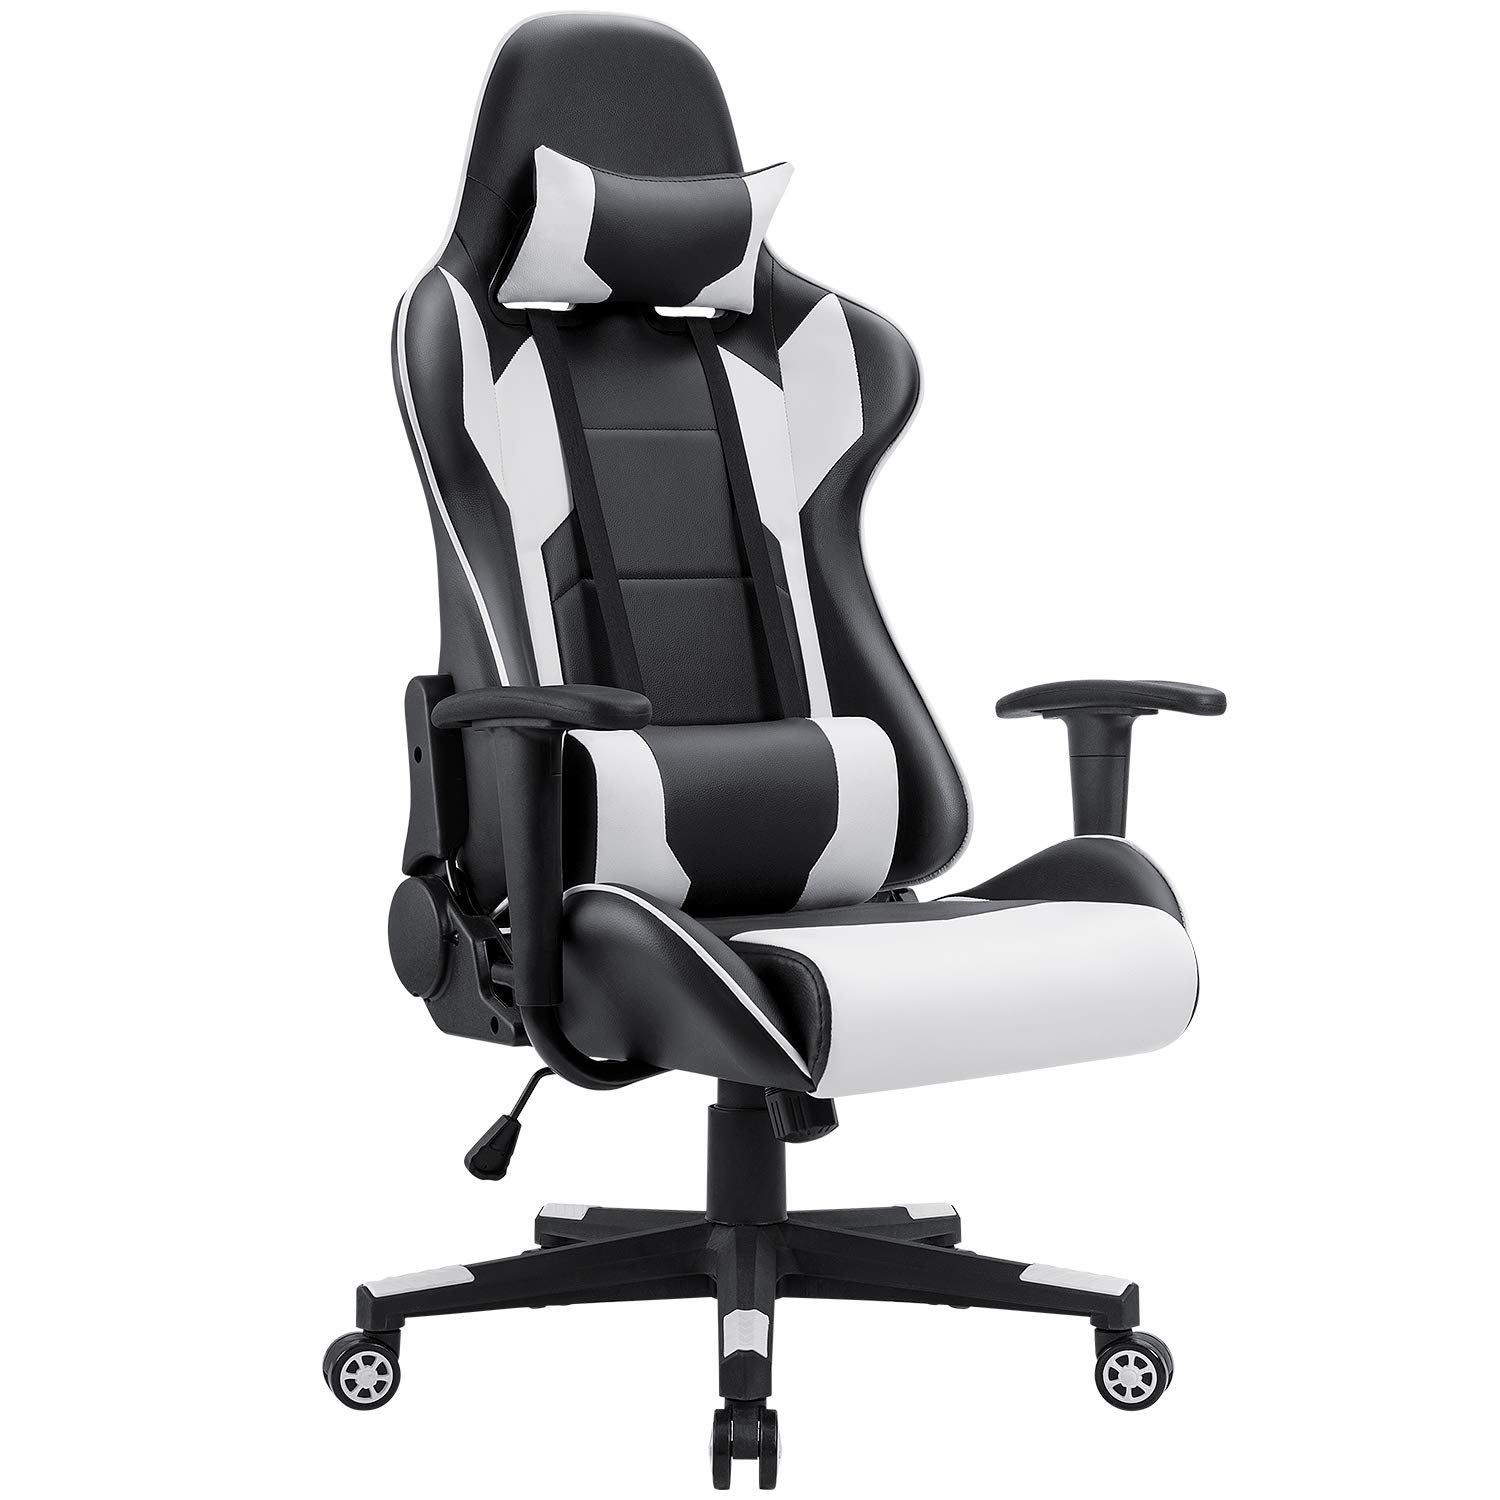 Miraculous Top 13 Best Gaming Chairs 2019 Editors Pick Omnicore Machost Co Dining Chair Design Ideas Machostcouk